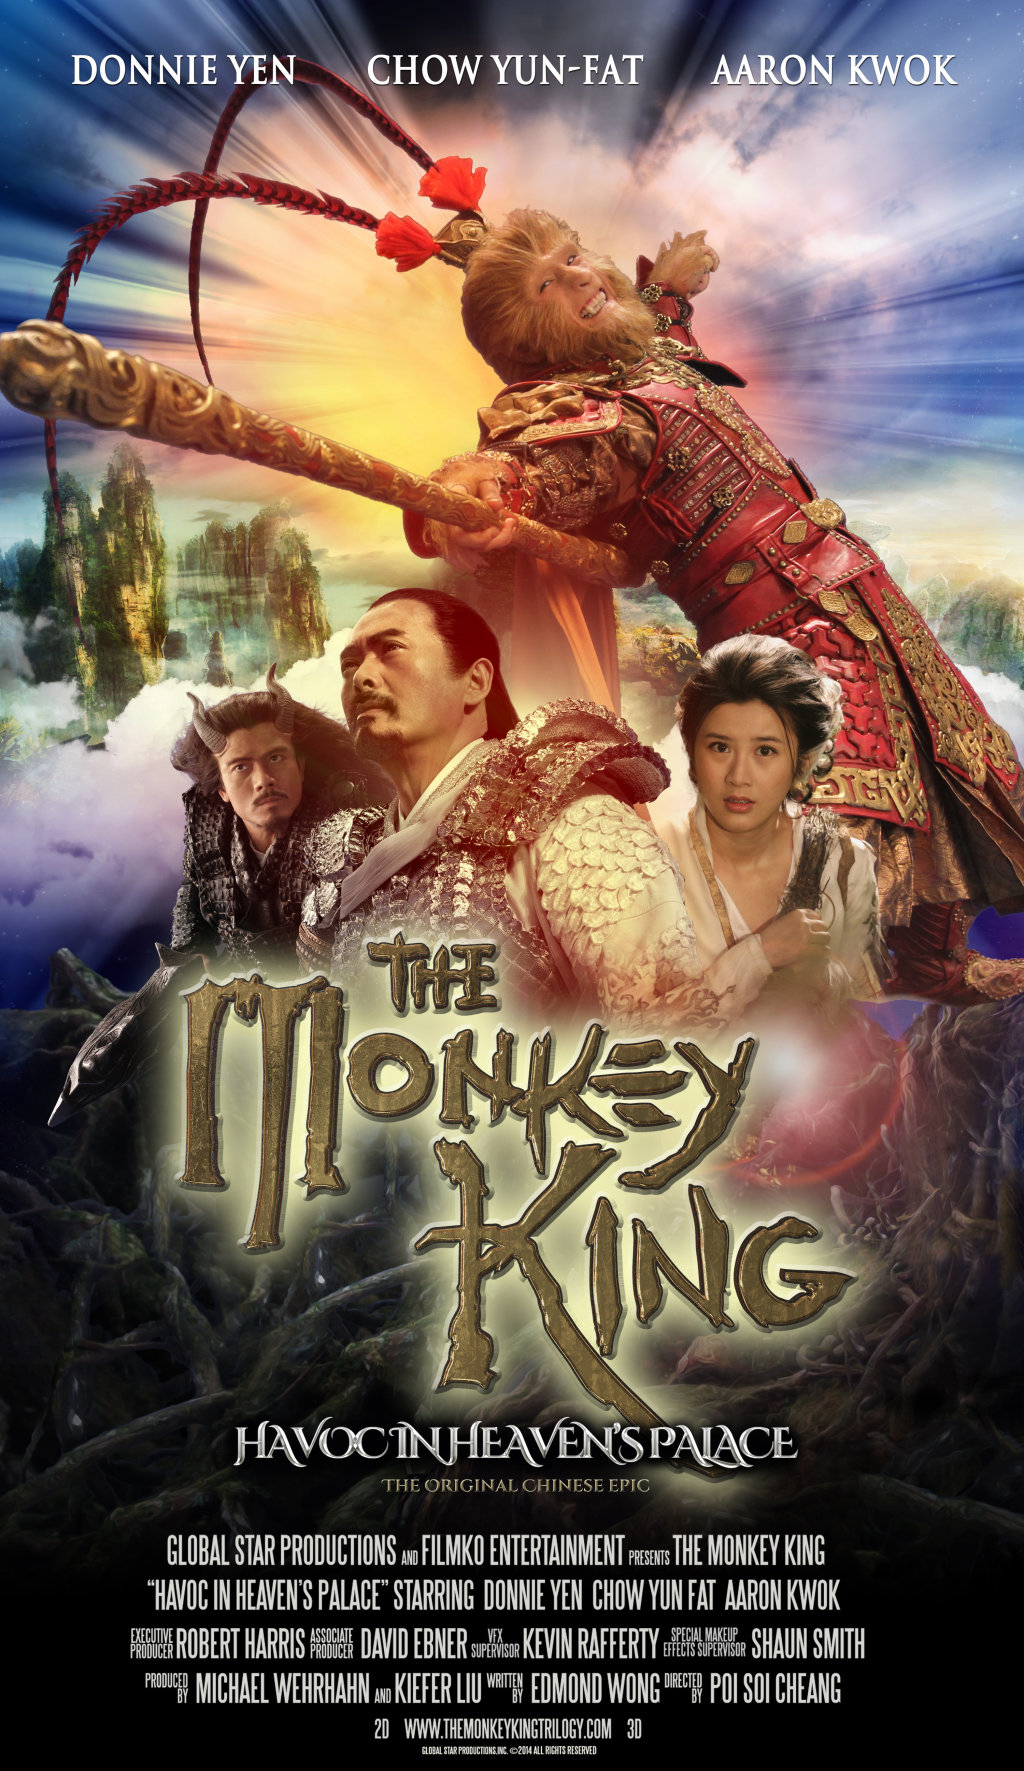 monkey king movies chinese netflix hindi dvd film hollywood dubbed havoc da palace poster ji nao gong brrip kwok aaron